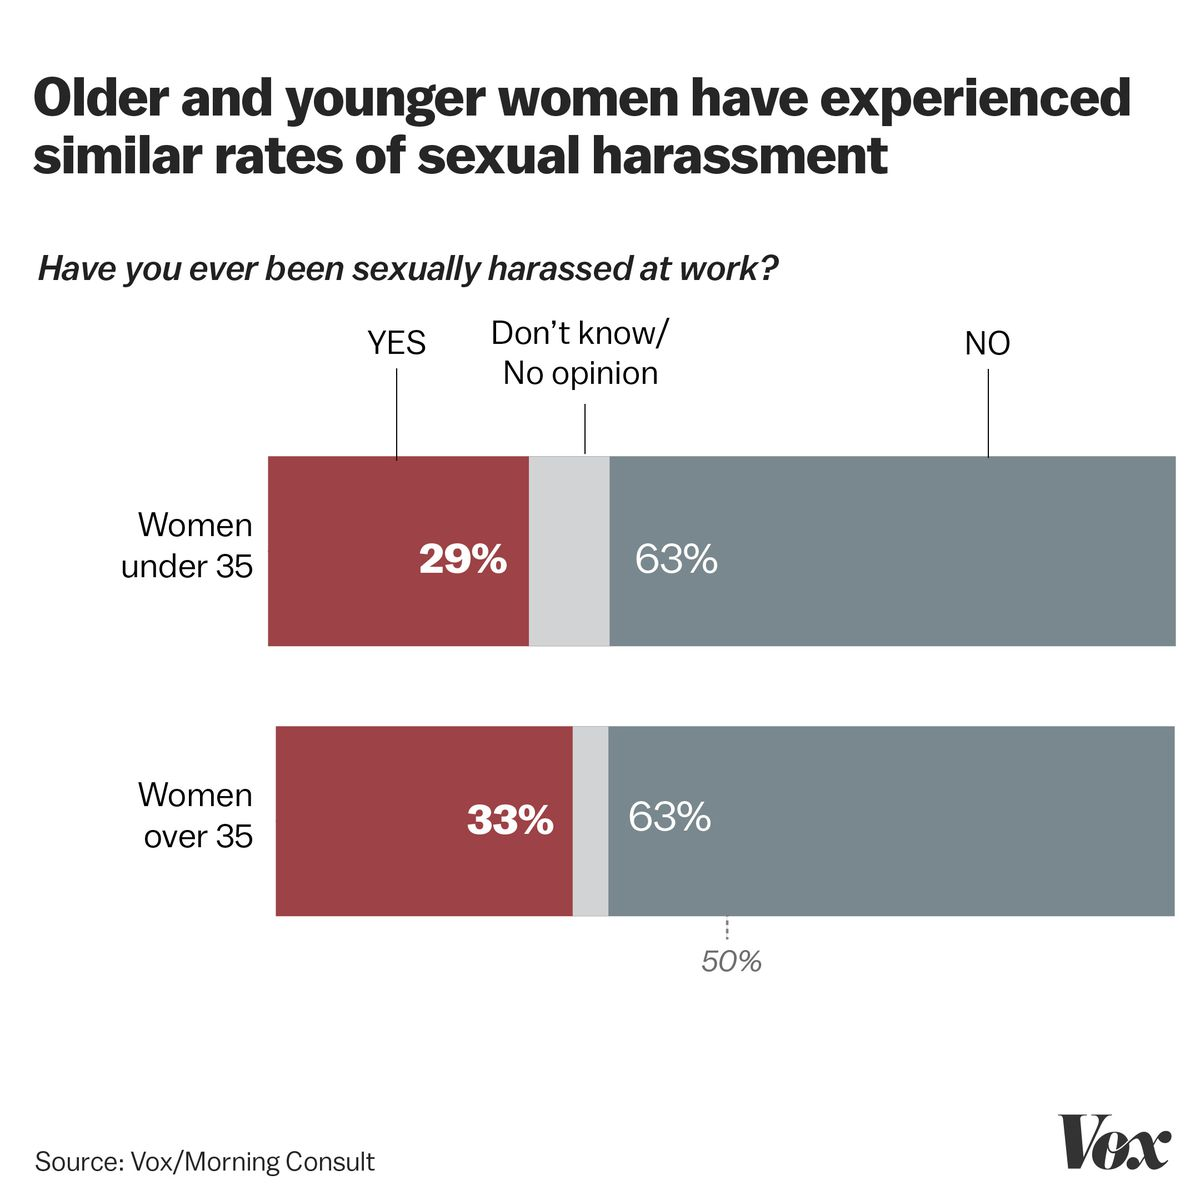 ... prevalence of sexual harassment may not have gone down much. Women  under 35 were about as likely as their elders to say they'd been harassed  at work.